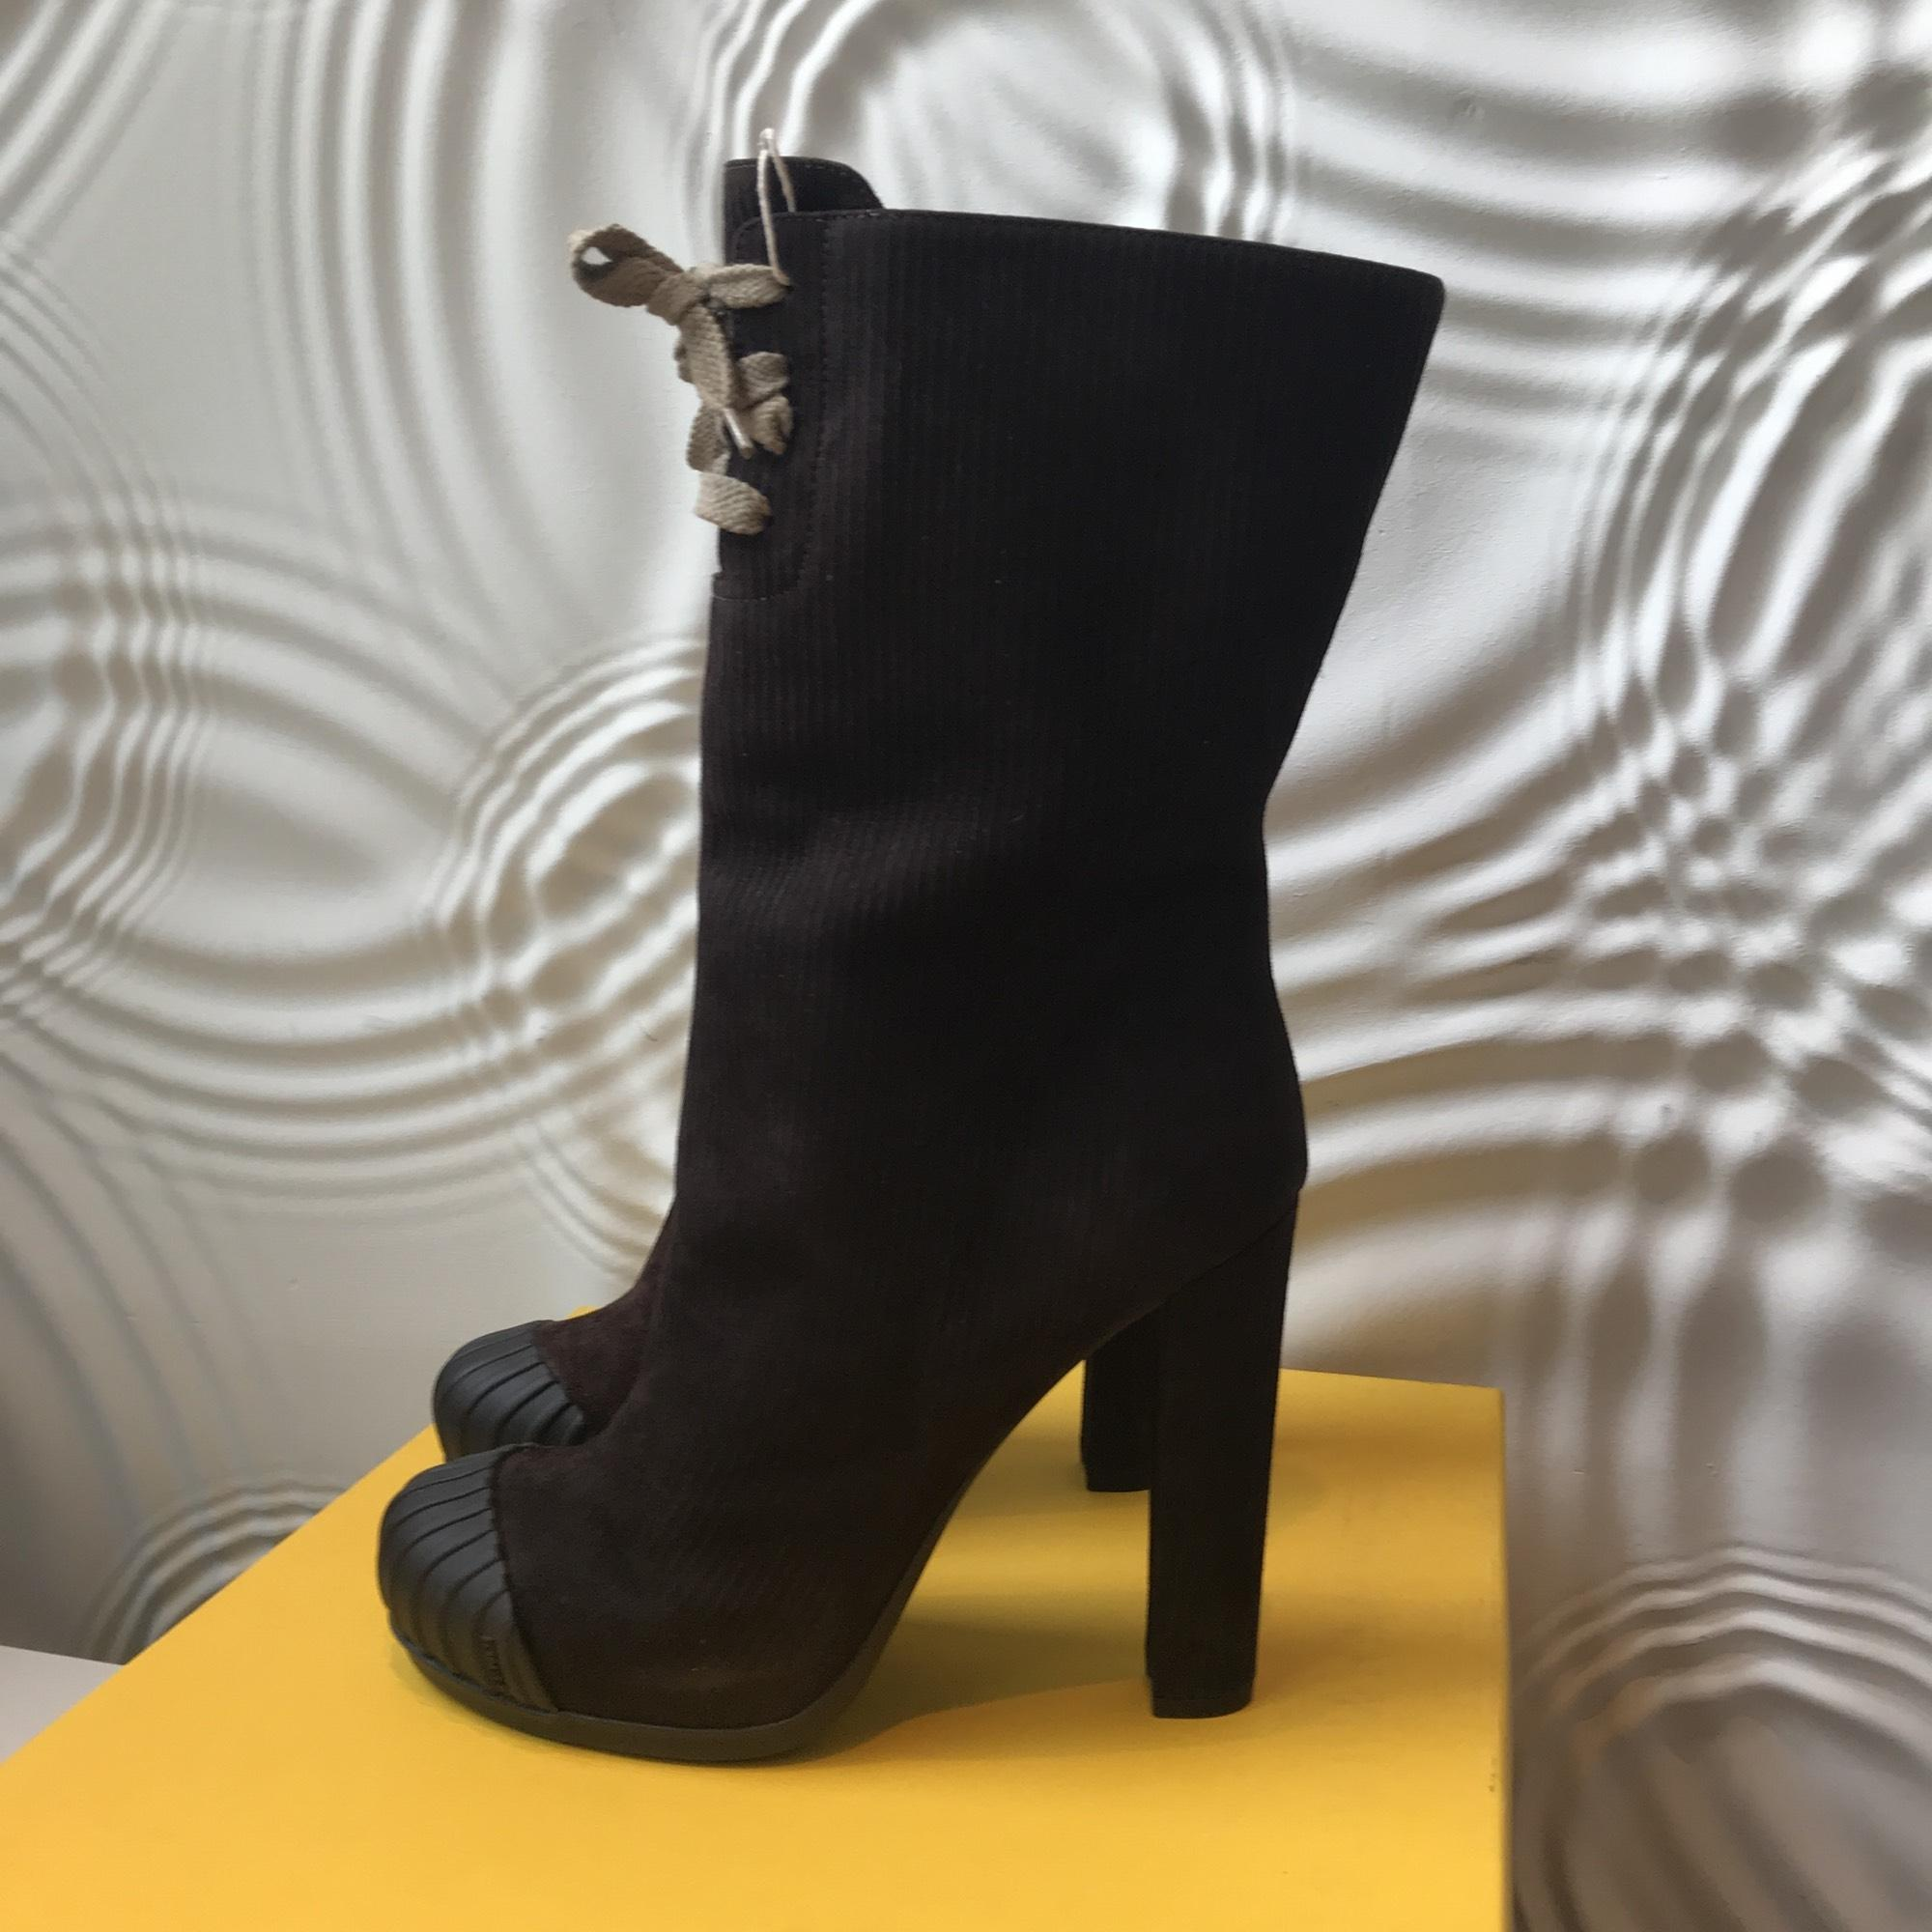 7c6bde031 Fendi Brown New Boots Booties Size EU 39 39 39 (Approx. US 9 ...